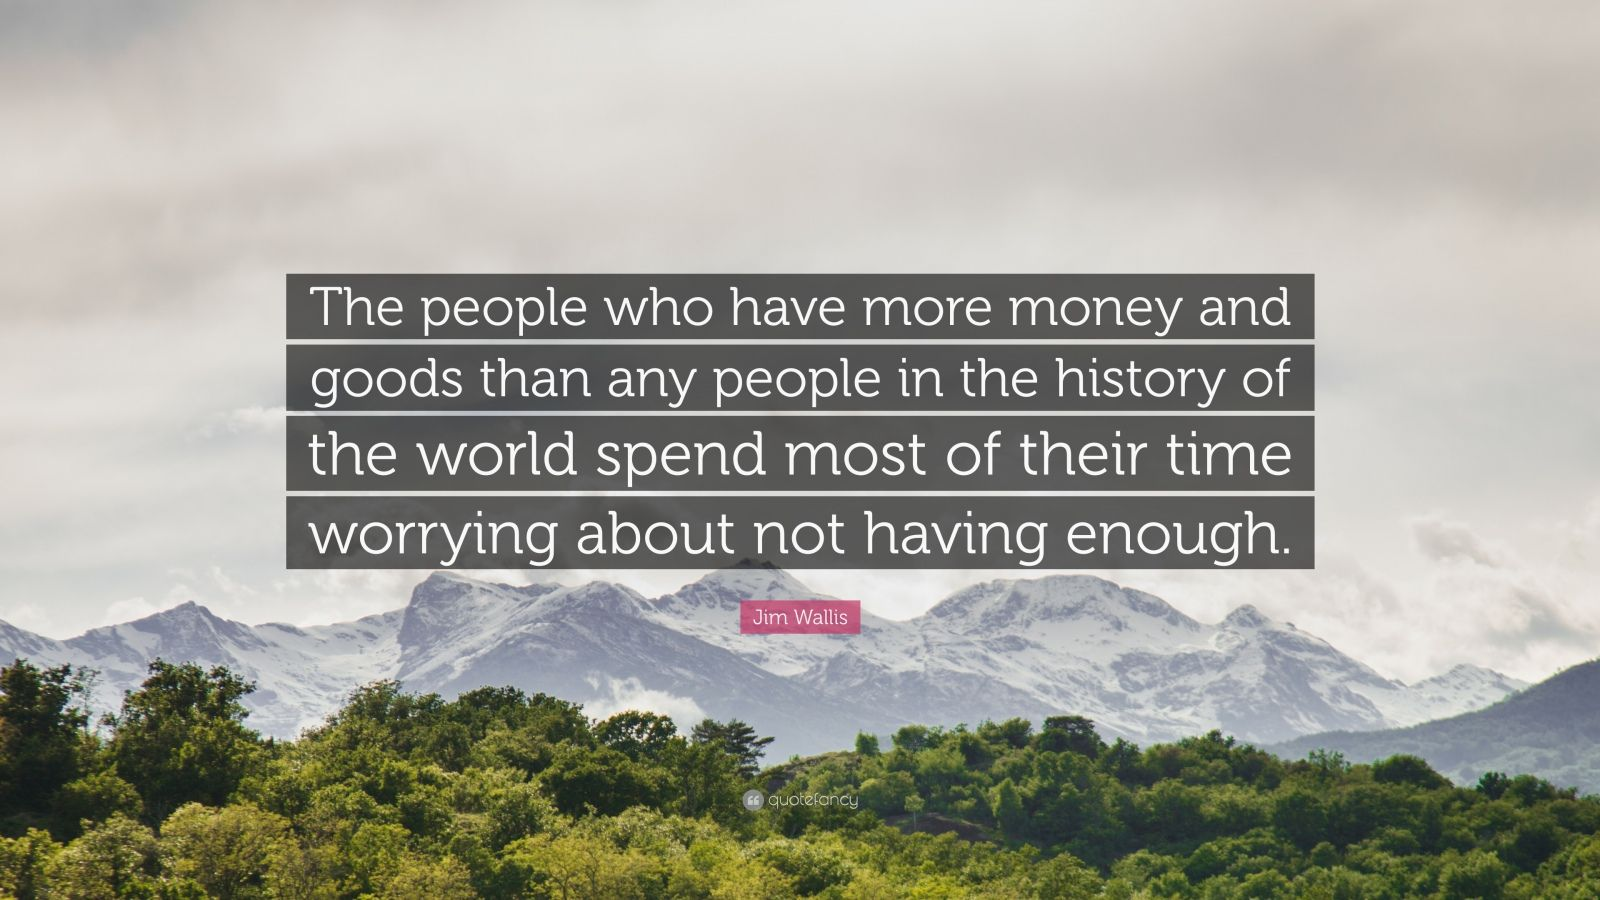 """Jim Wallis Quote: """"The people who have more money and goods than any people in the history of the world spend most of their time worrying about not having enough."""""""